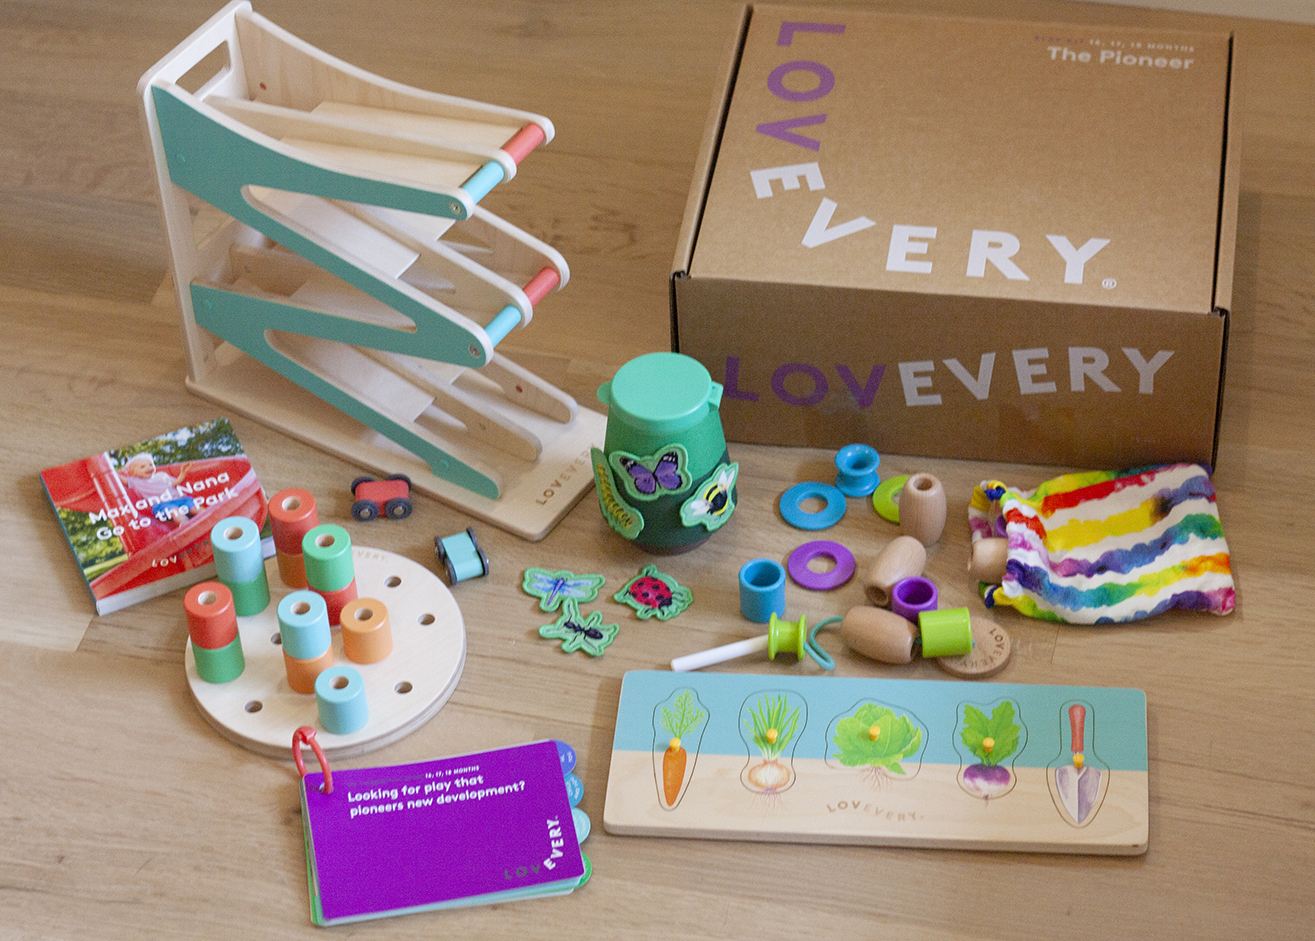 What's inside The Pioneer Play Kit by Lovevery